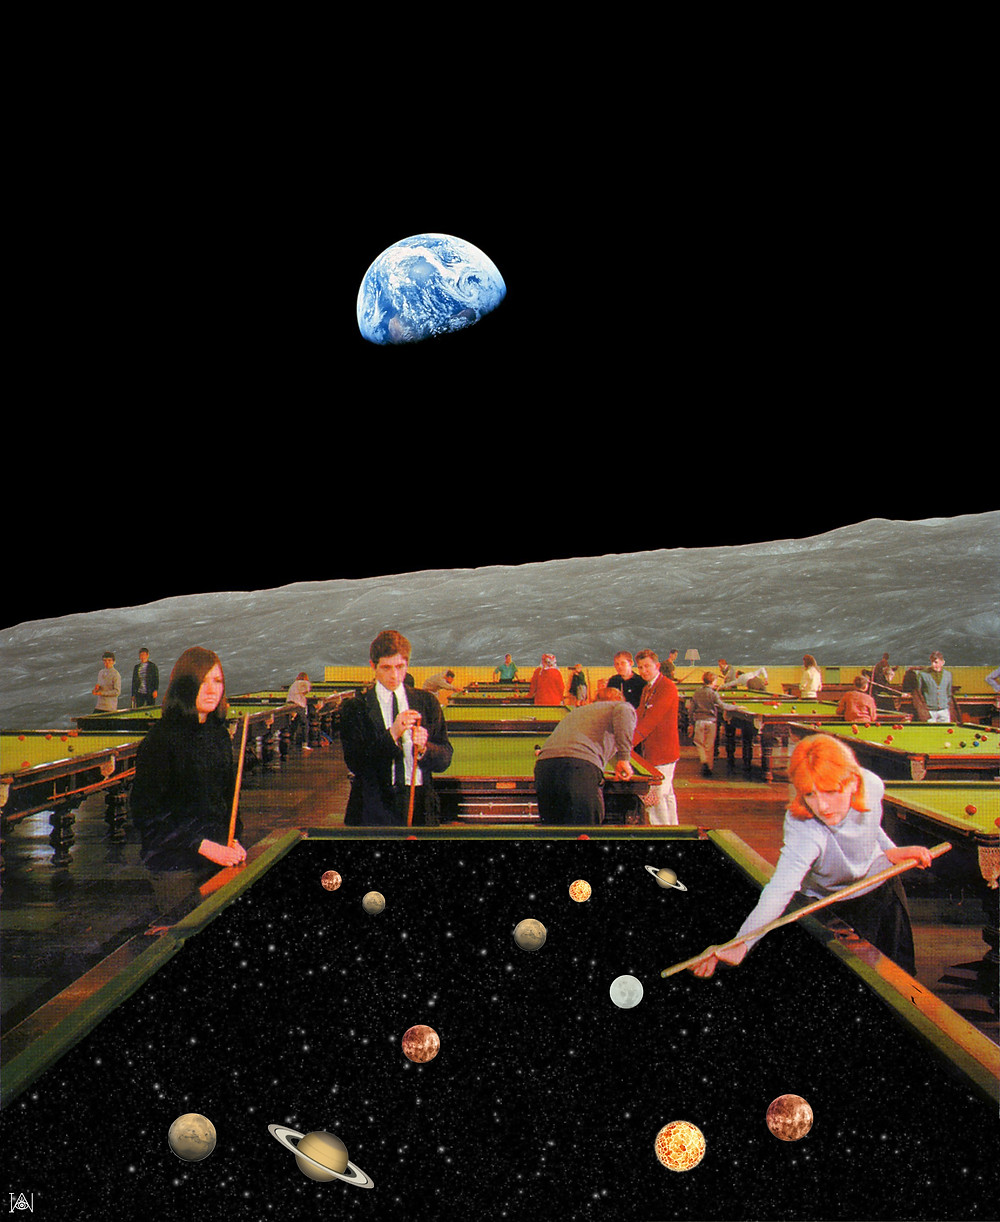 'Cosmic games' Sometimes my art is not being born from an idea and then searching for visuals, sometimes it's bumping into a photo and doing something fun with it. 'Cosmic games' is one of them. I found this retro picture of people playing pool and decided to take it outer space. The background image is actually a famous picture by NASA called 'Earthrise'.